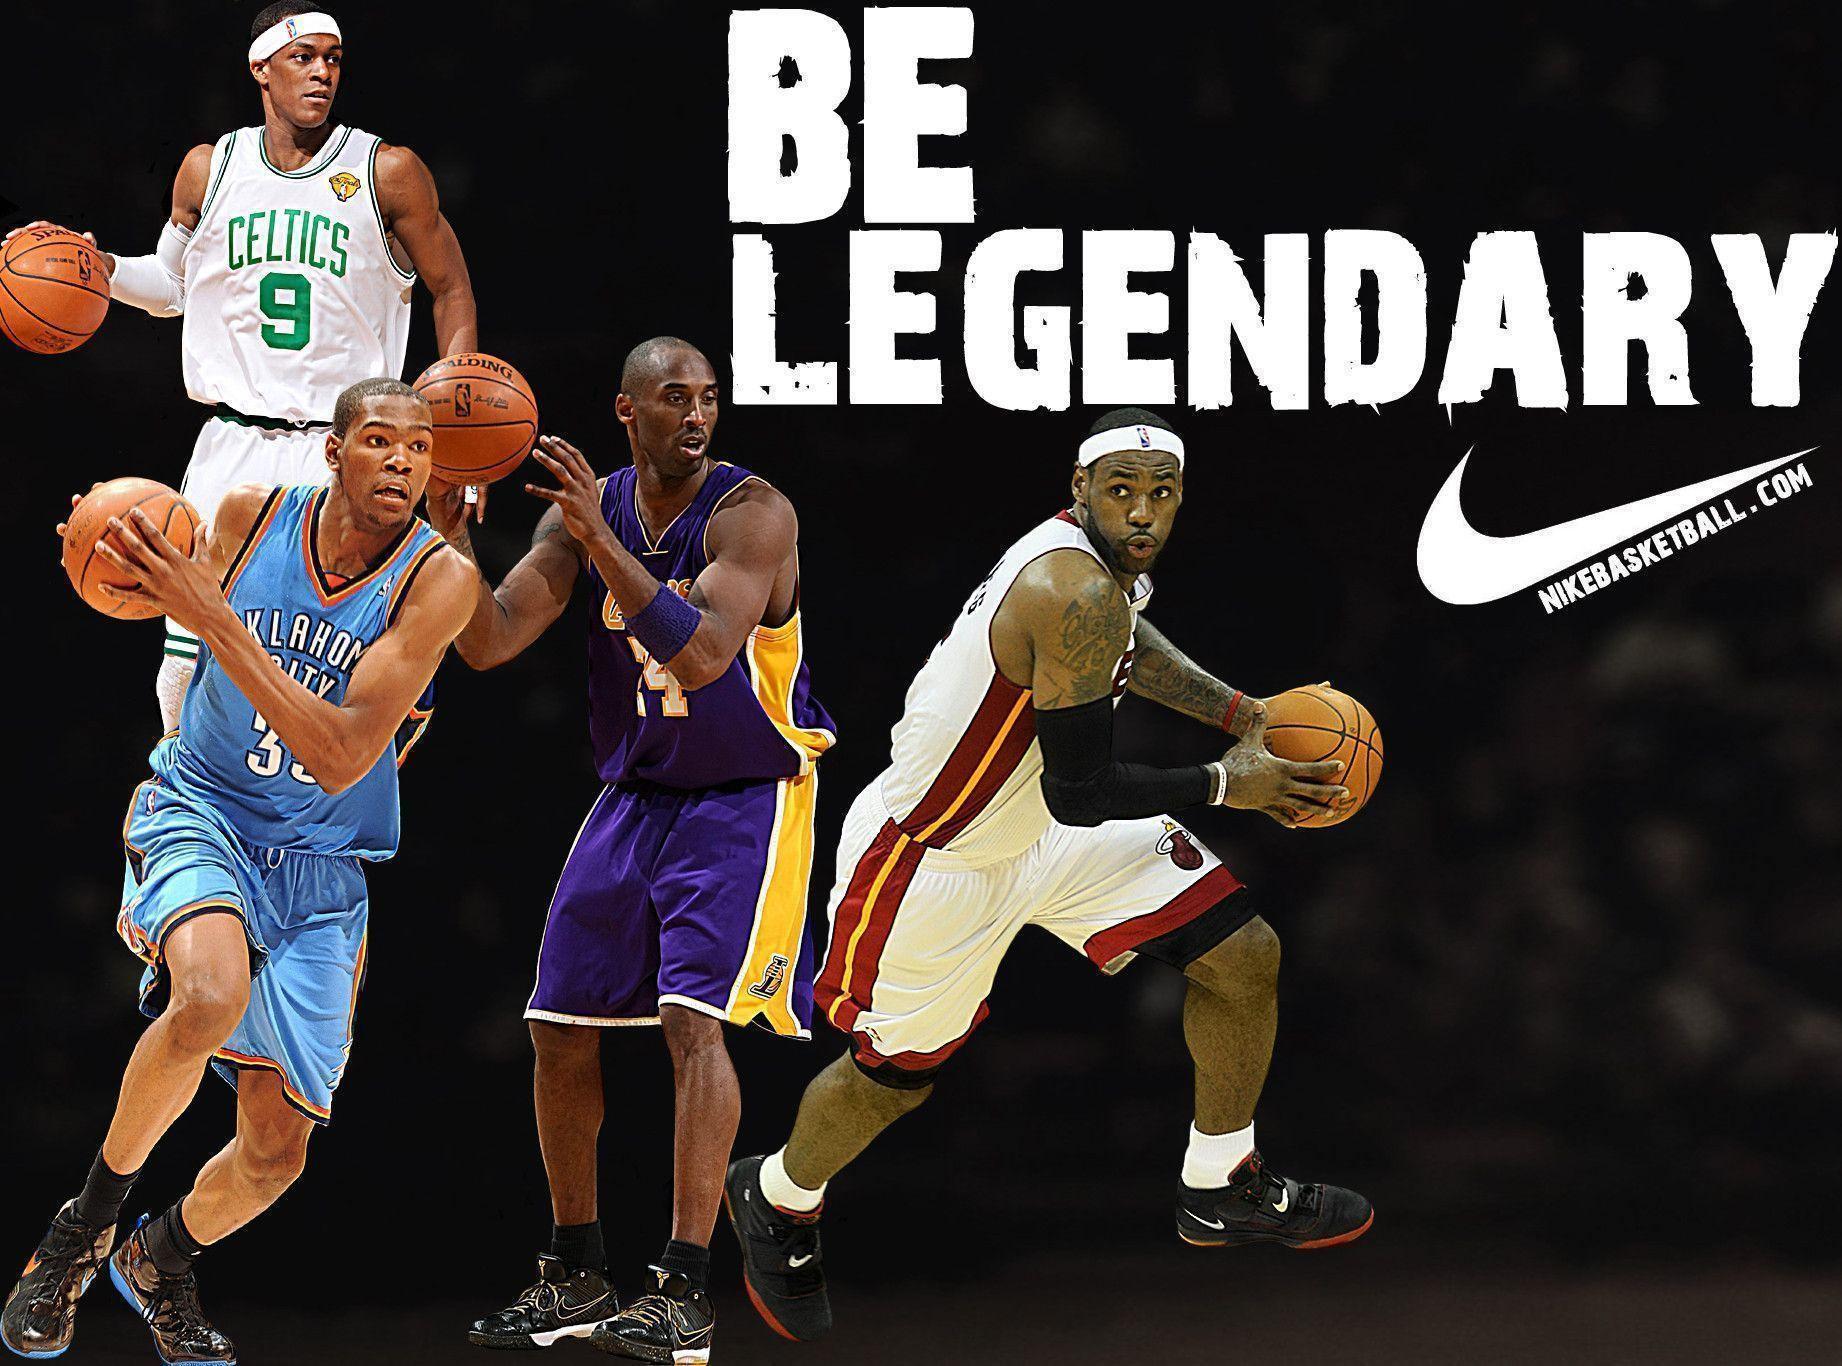 Nike Wallpaper Nba: Awesome Basketball Backgrounds